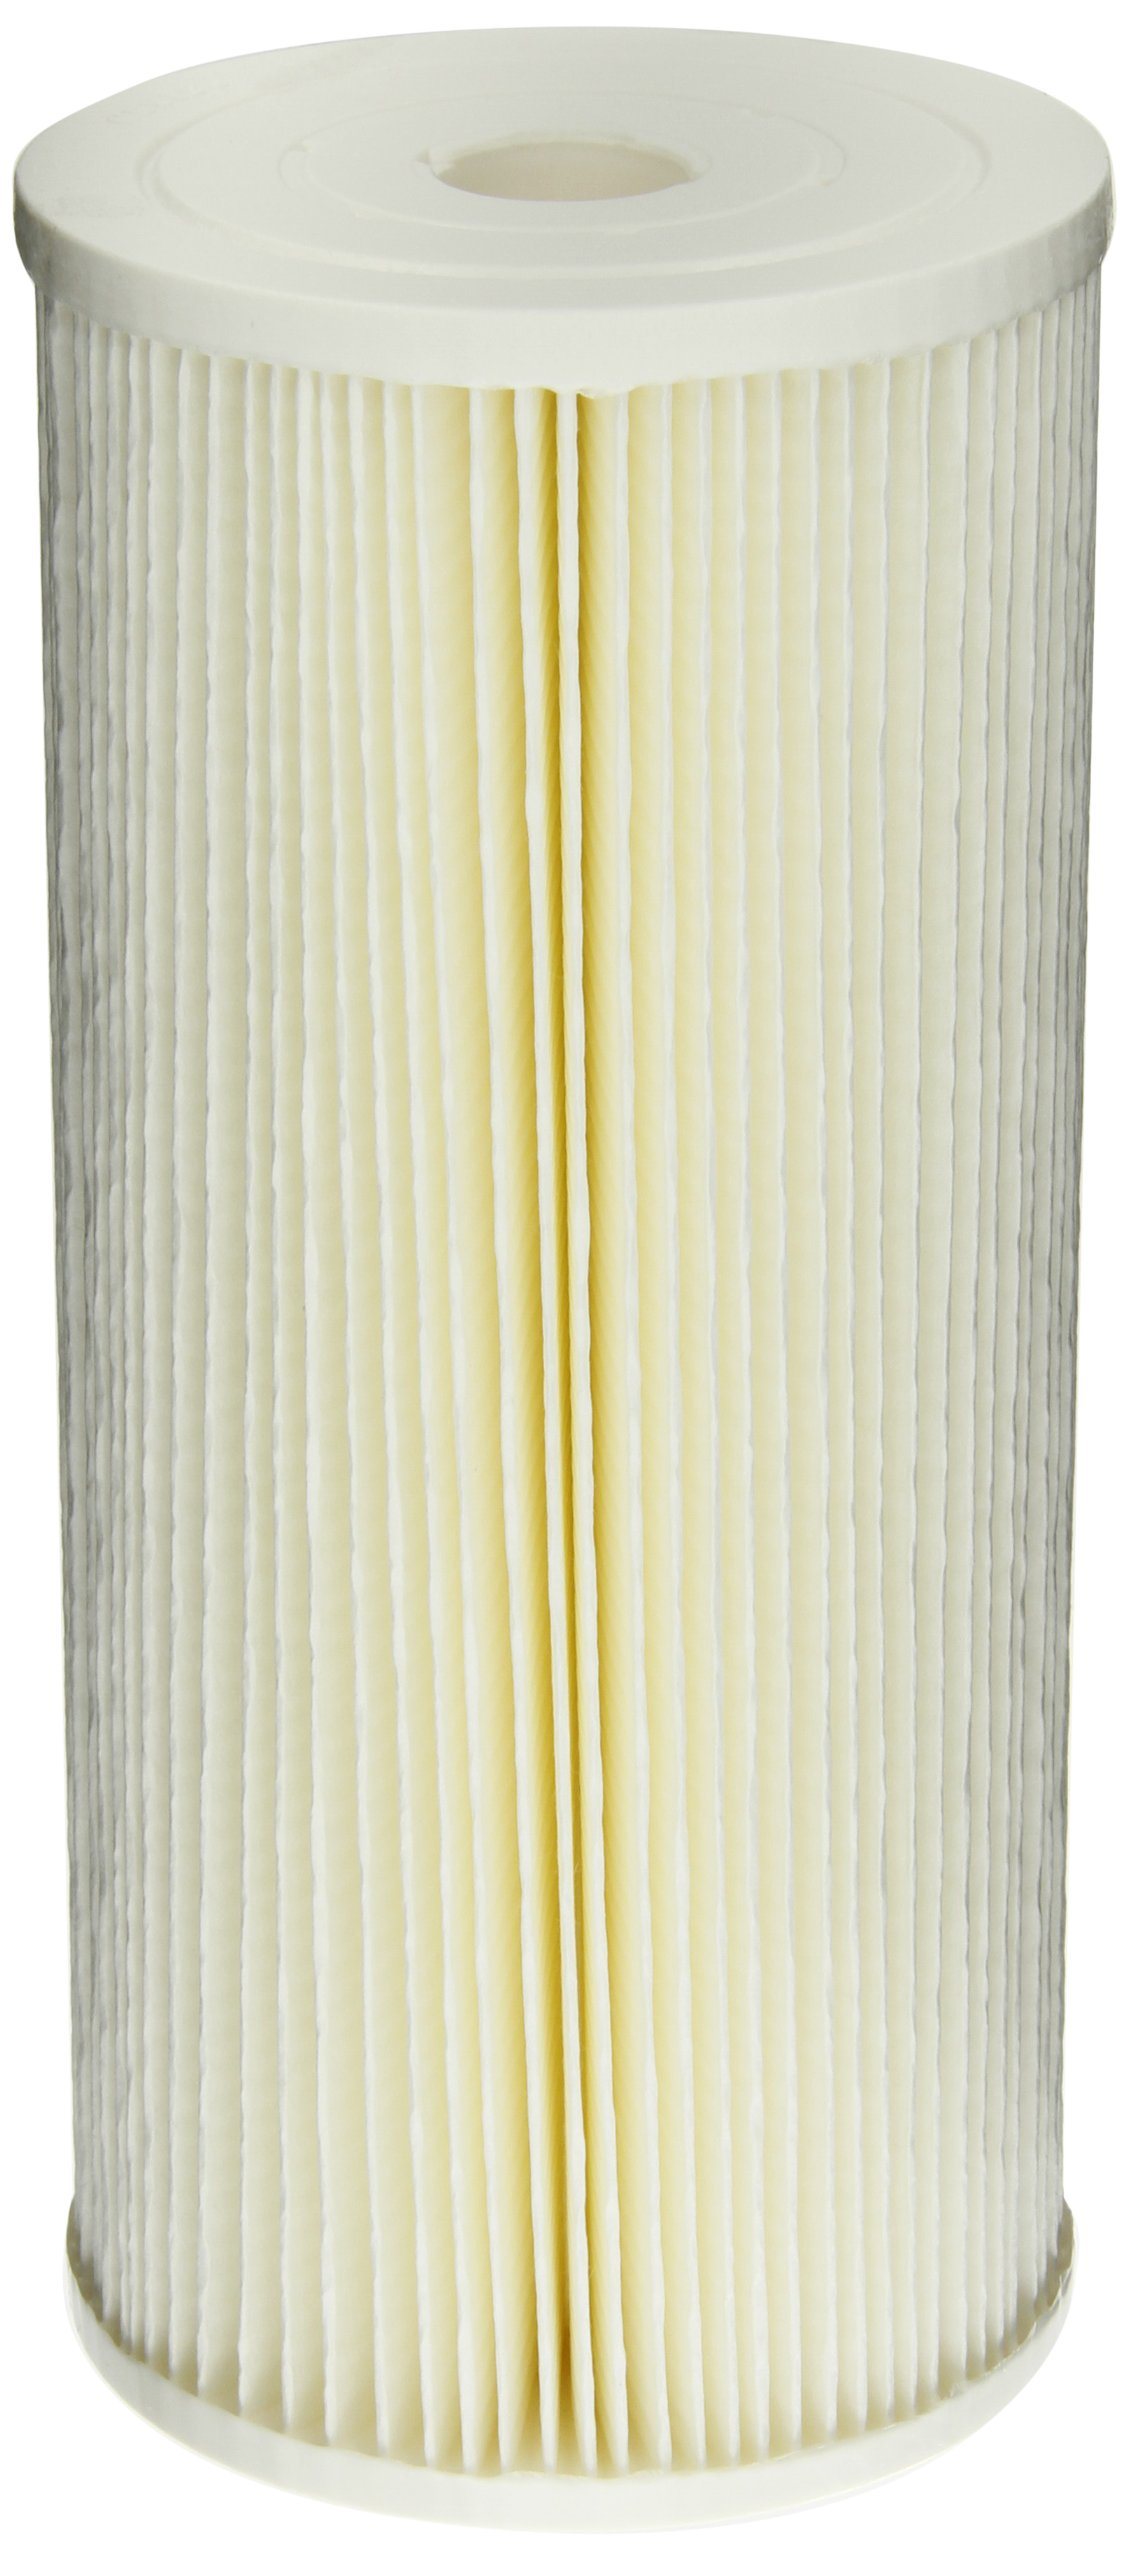 Pentek ECP5-BB Pleated Cellulose Polyester Filter Cartridge, 9-3/4'' x 4-1/2'', 5 Microns